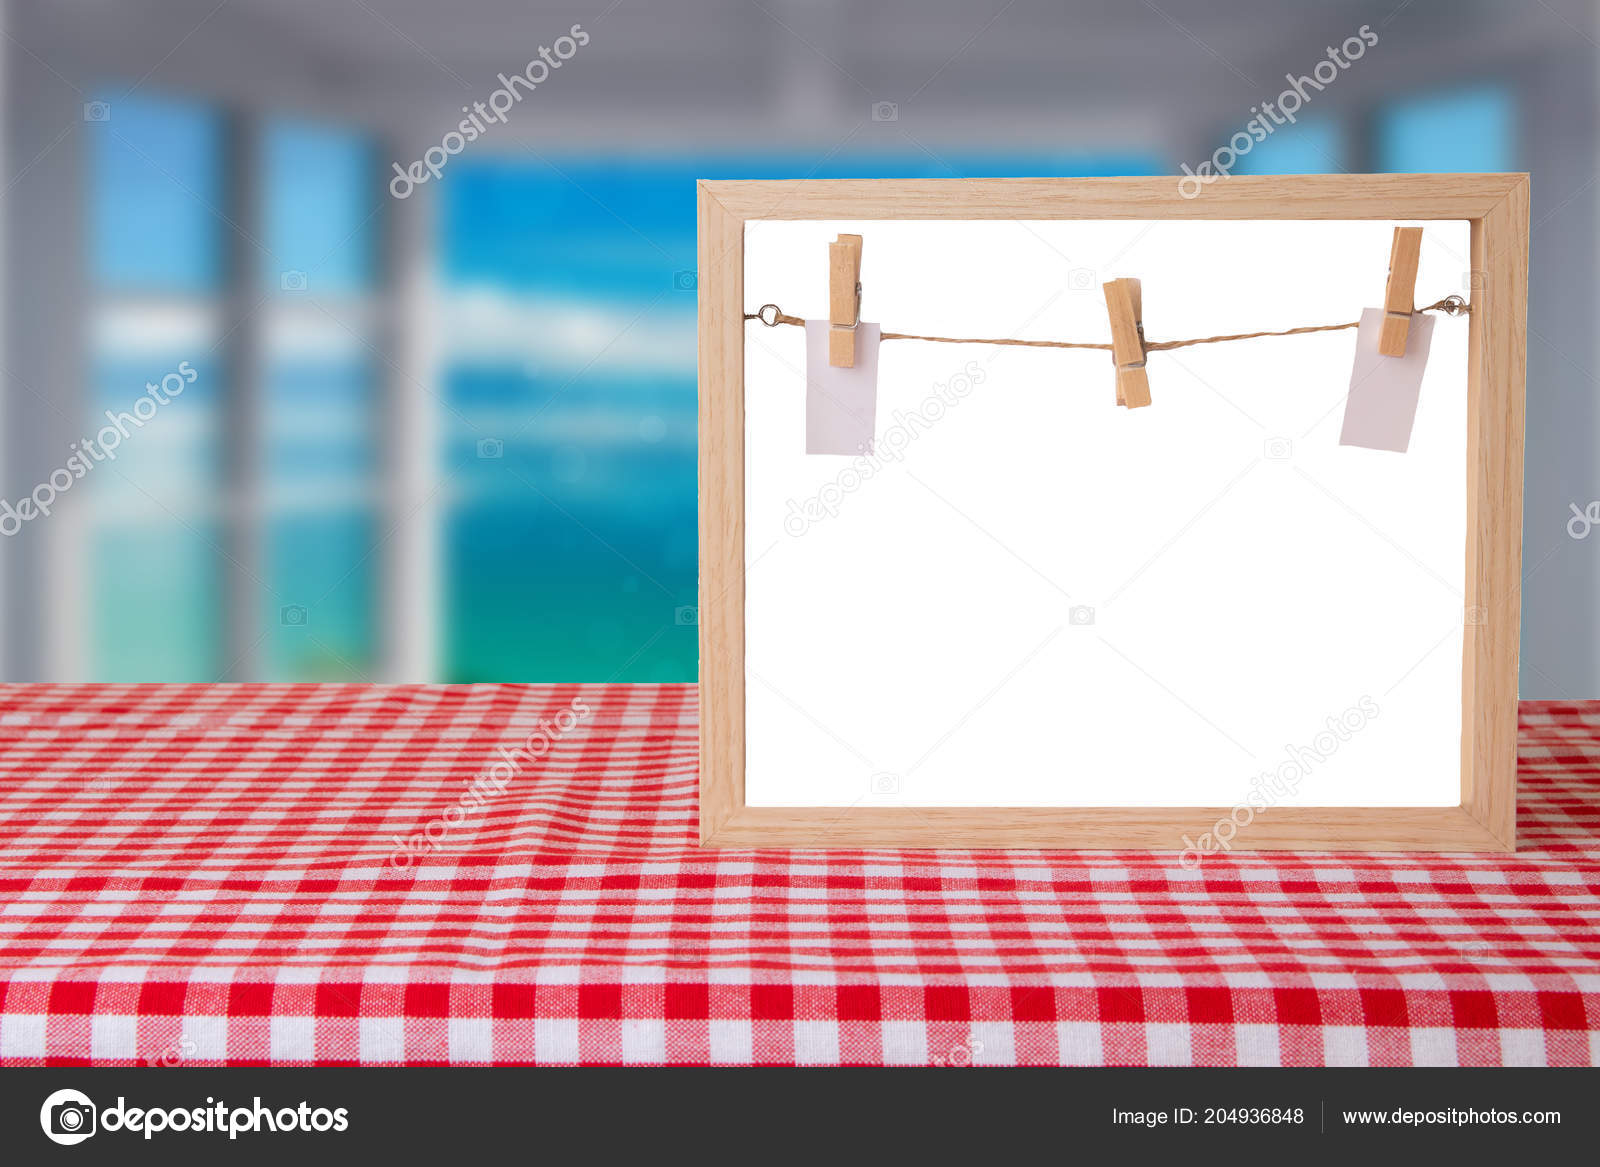 food recipe template empty wooden frame red white checkered